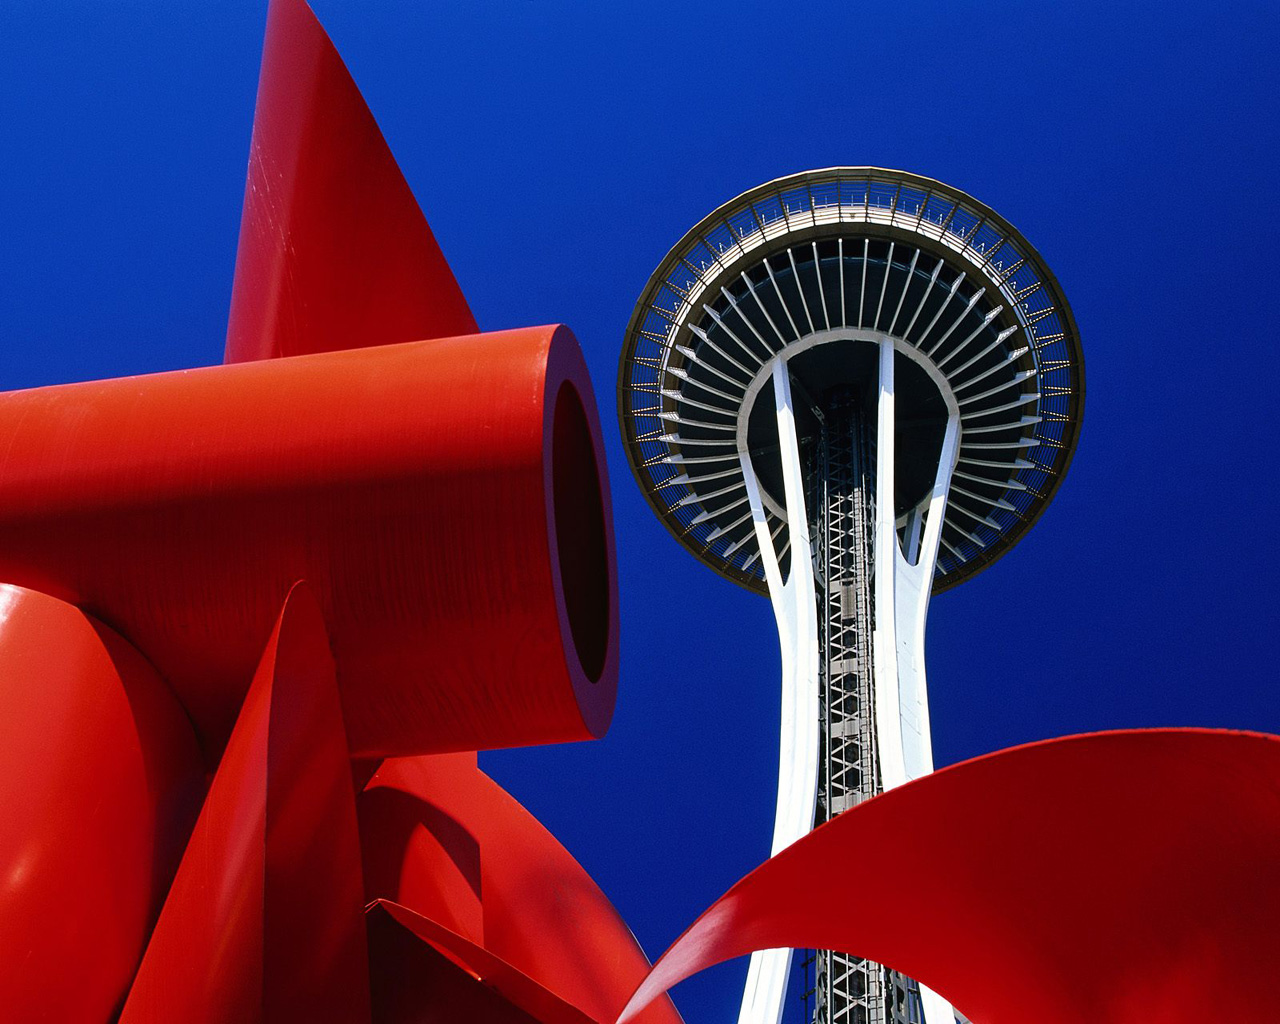 Photo of Free Seattle HD (p.27033912) - BsnSCB Graphics